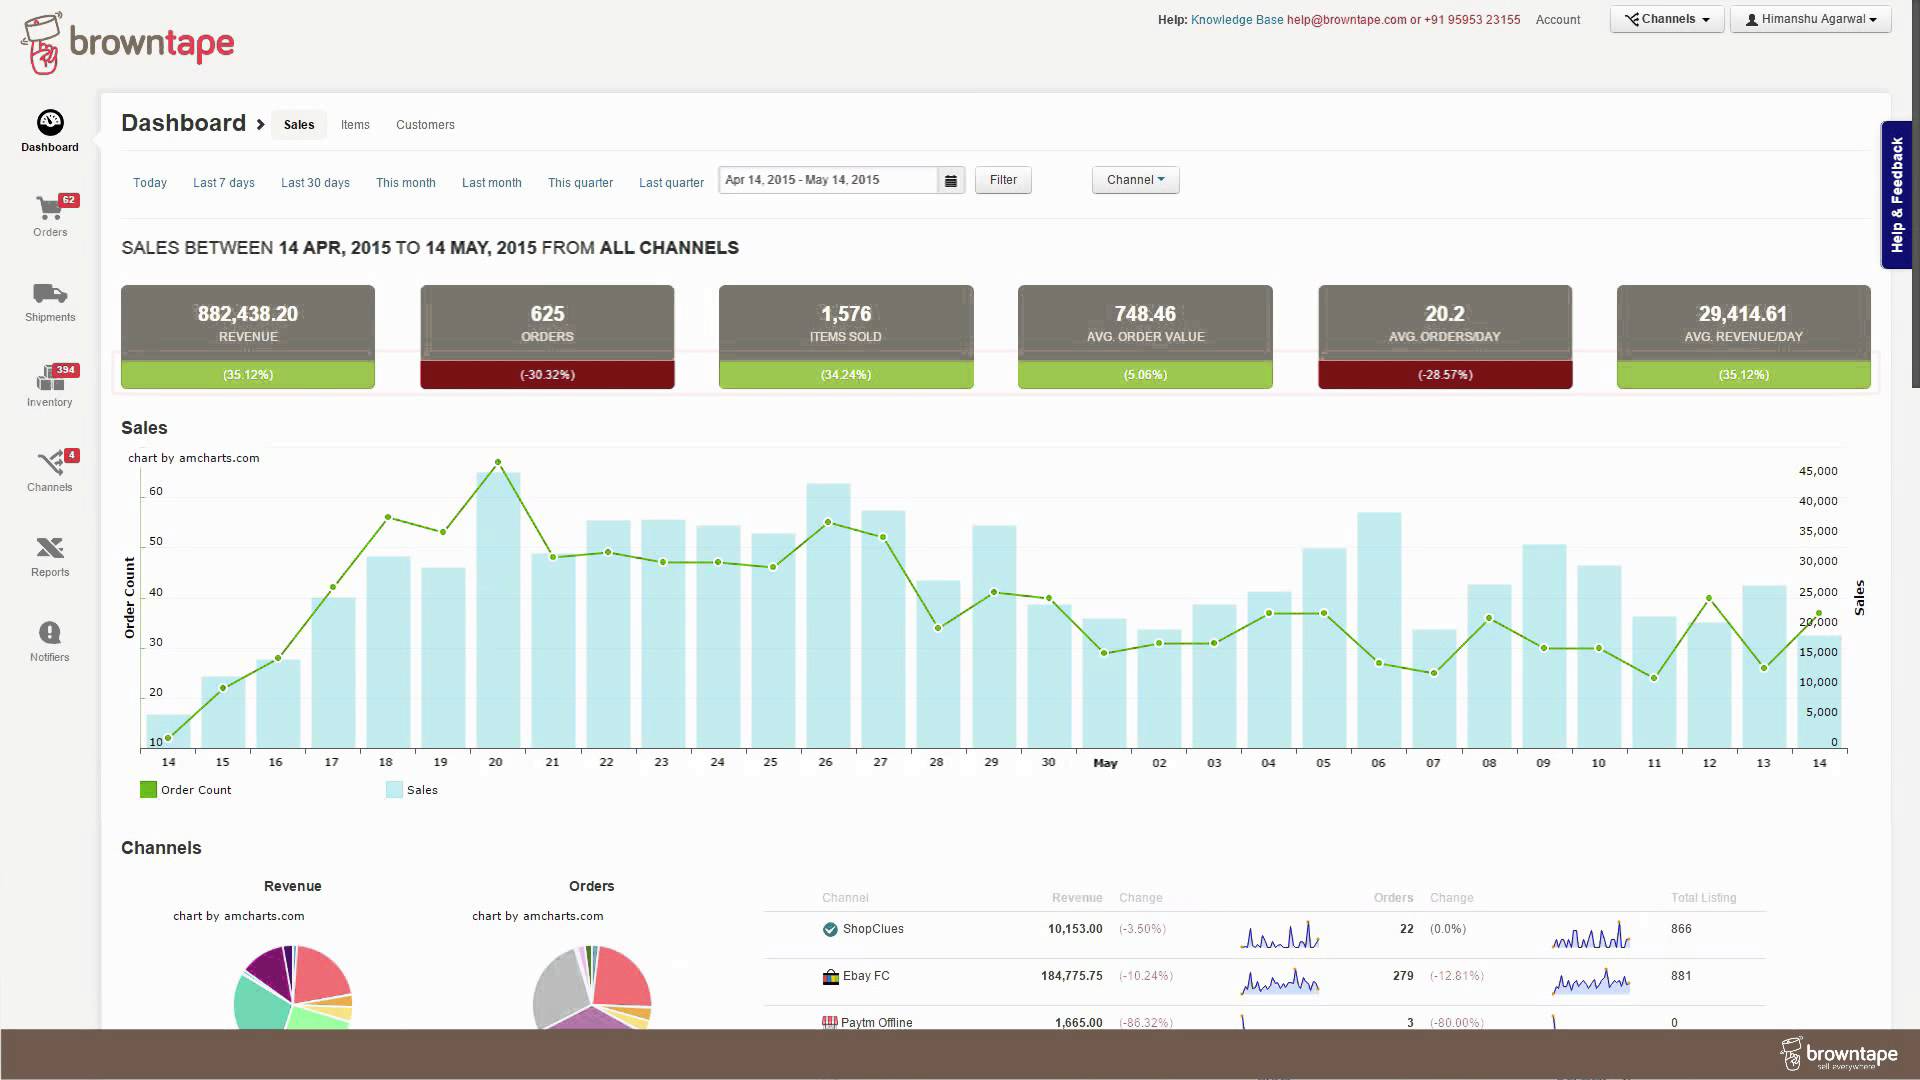 The Browntape sales dashboard